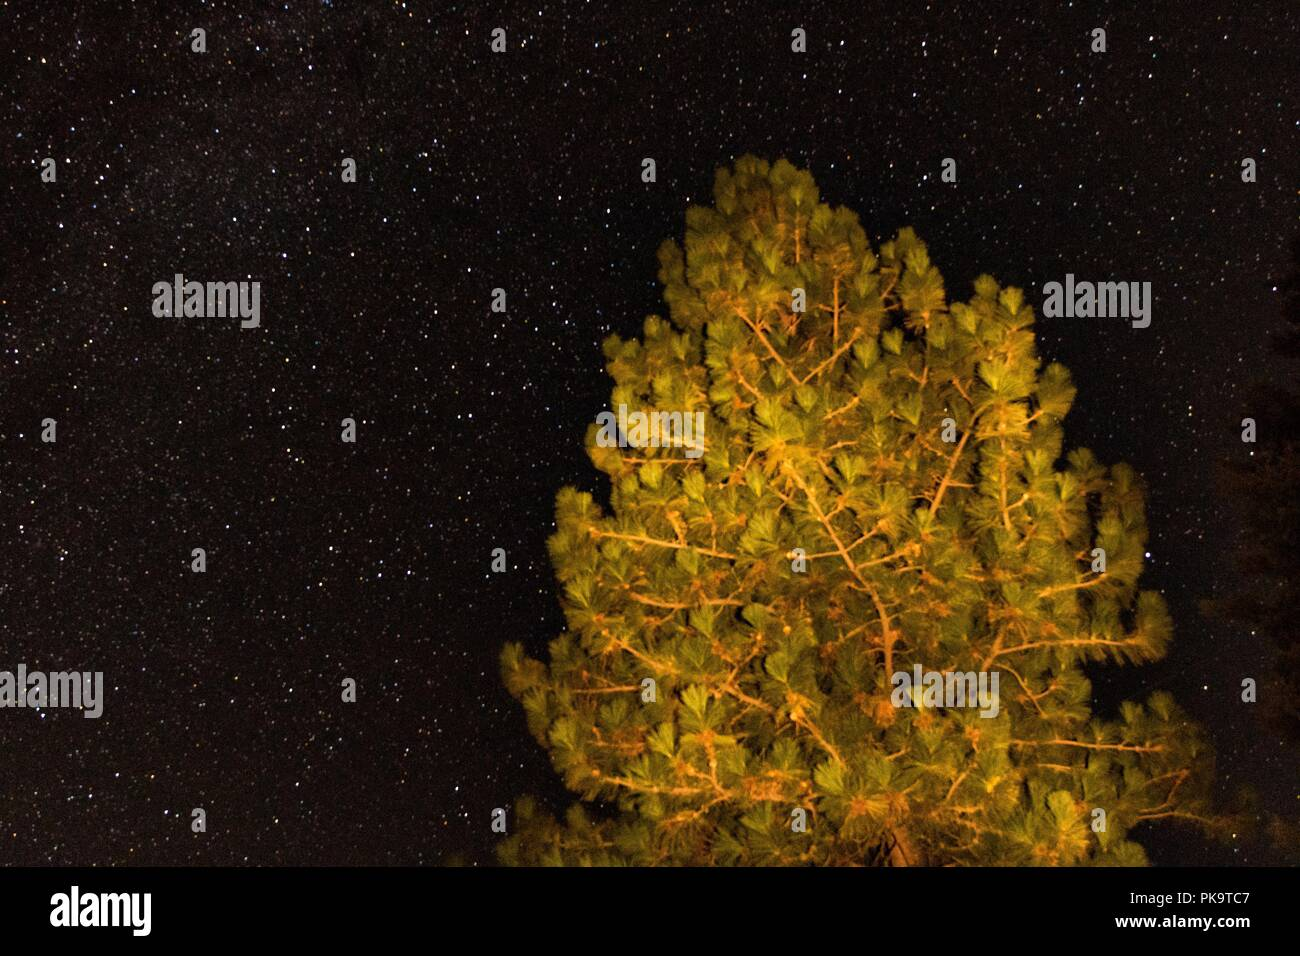 Astrophotography galaxy star background for astronomy, space or cosmos, a night sky universe, interstellar science fiction texture with a light paint - Stock Image